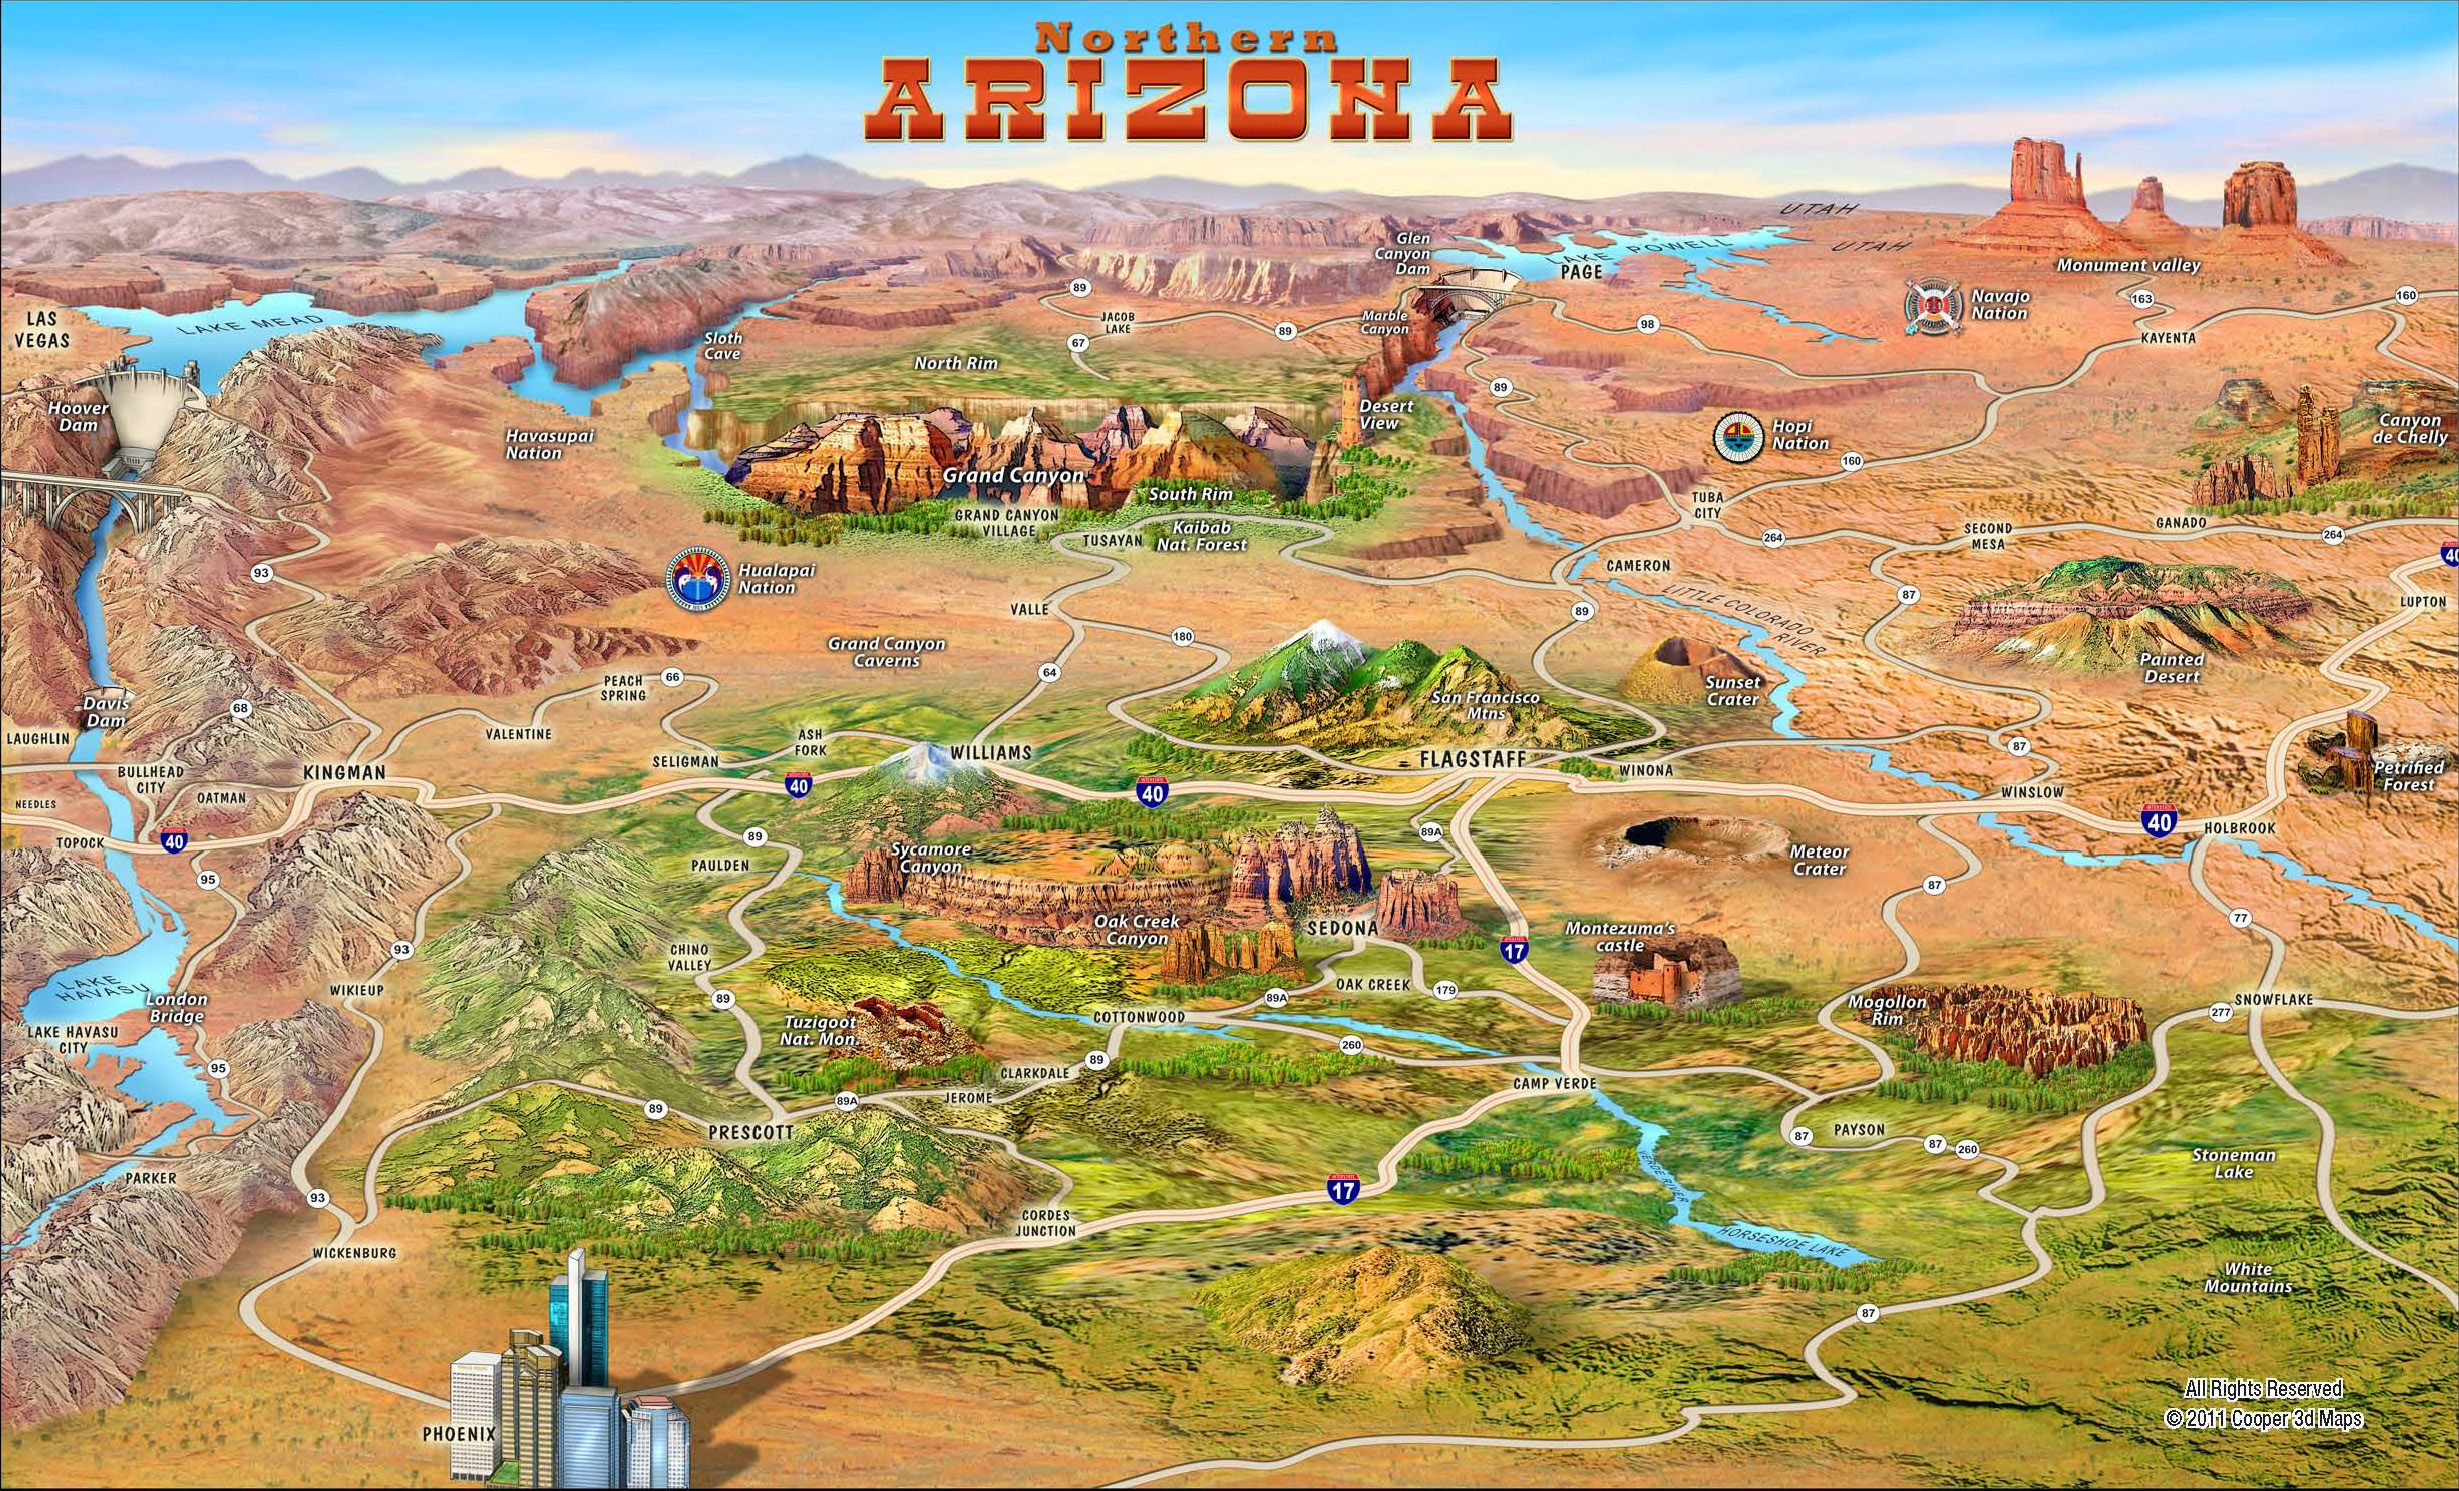 Large Detailed Tourist Attractions Panoramic Map Of Northern - Arizona map of usa